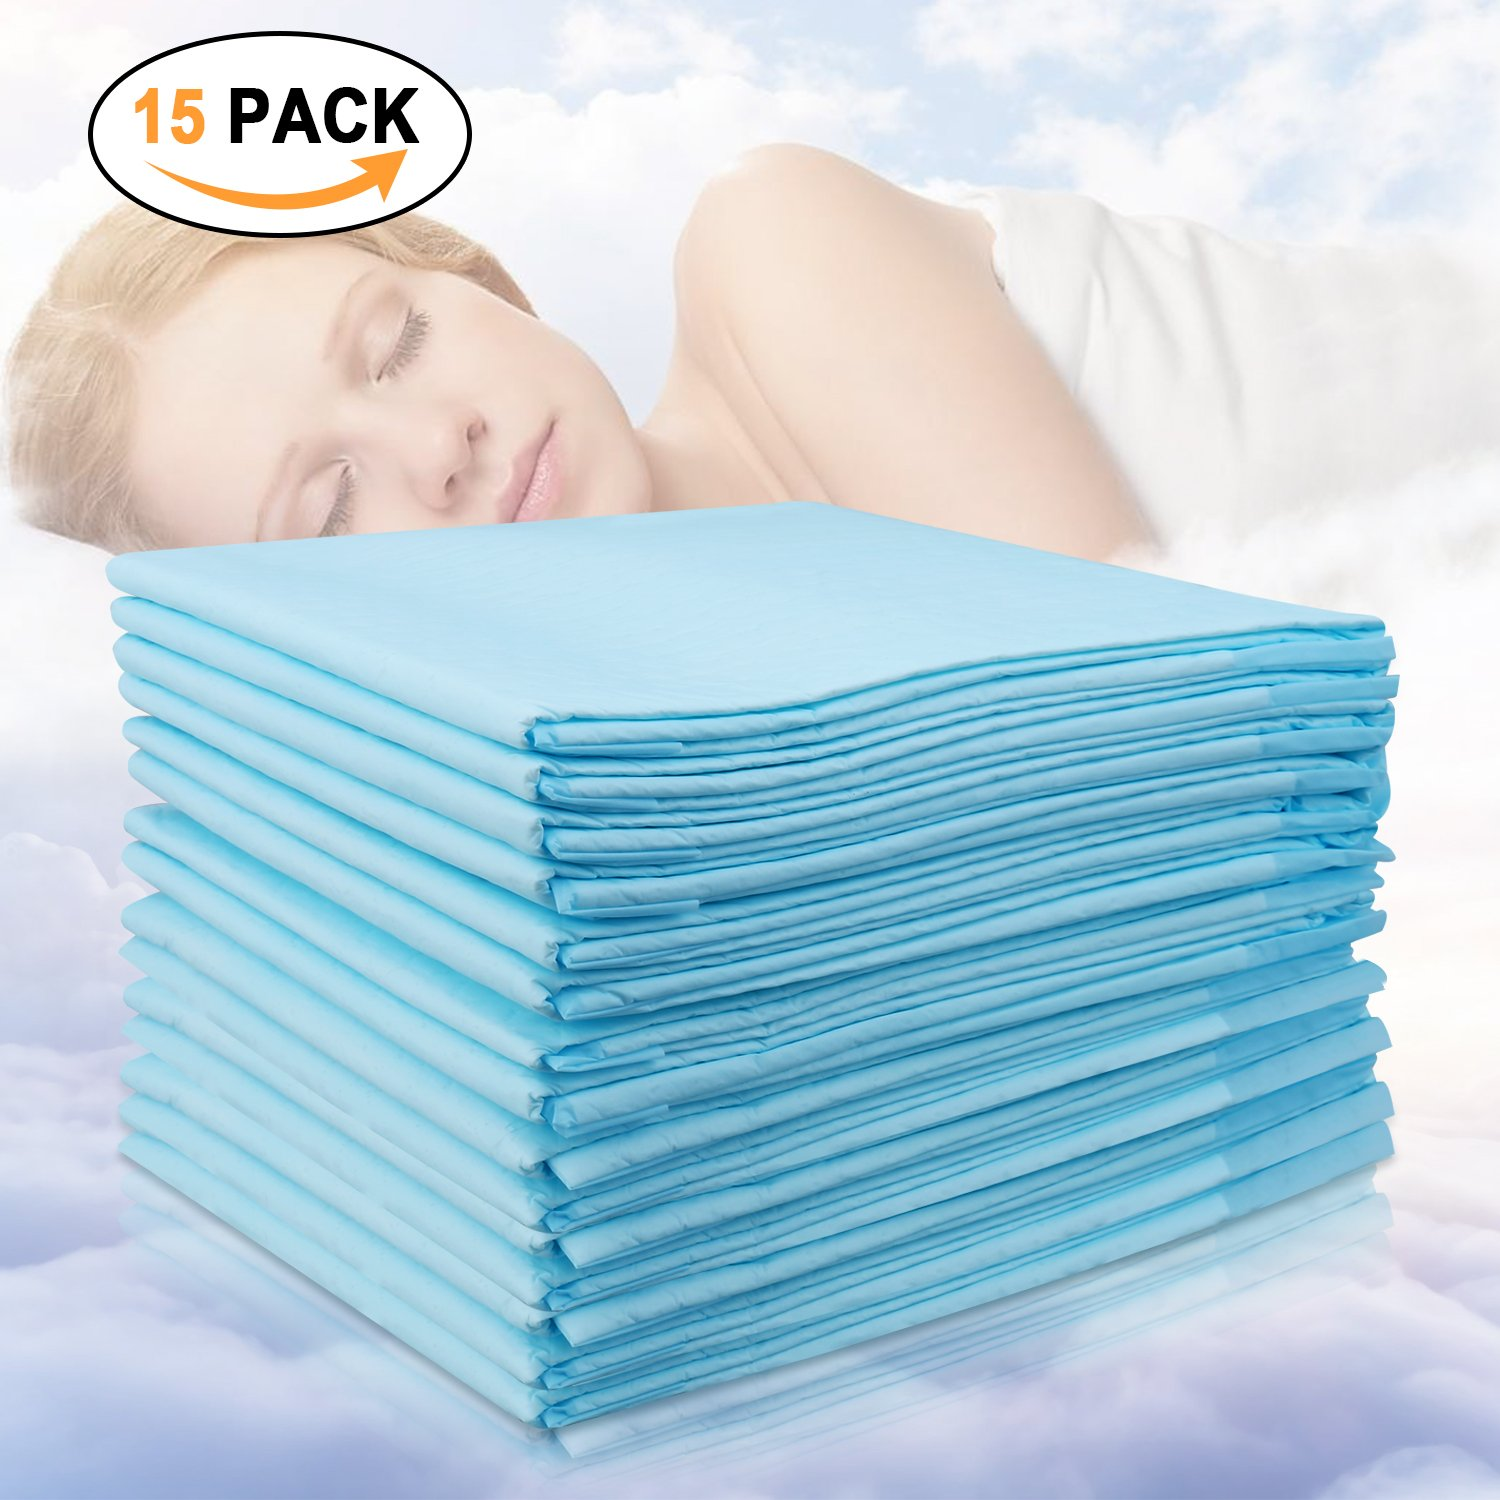 Disposable Large Changing Pads, High Absorbent Waterproof Portable Mattress, Leak-Proof Breathable Incontinence Pad, Play Sheet Bed Chair Table mat Protector, Adult Child Baby Pets Underpad Youbaby